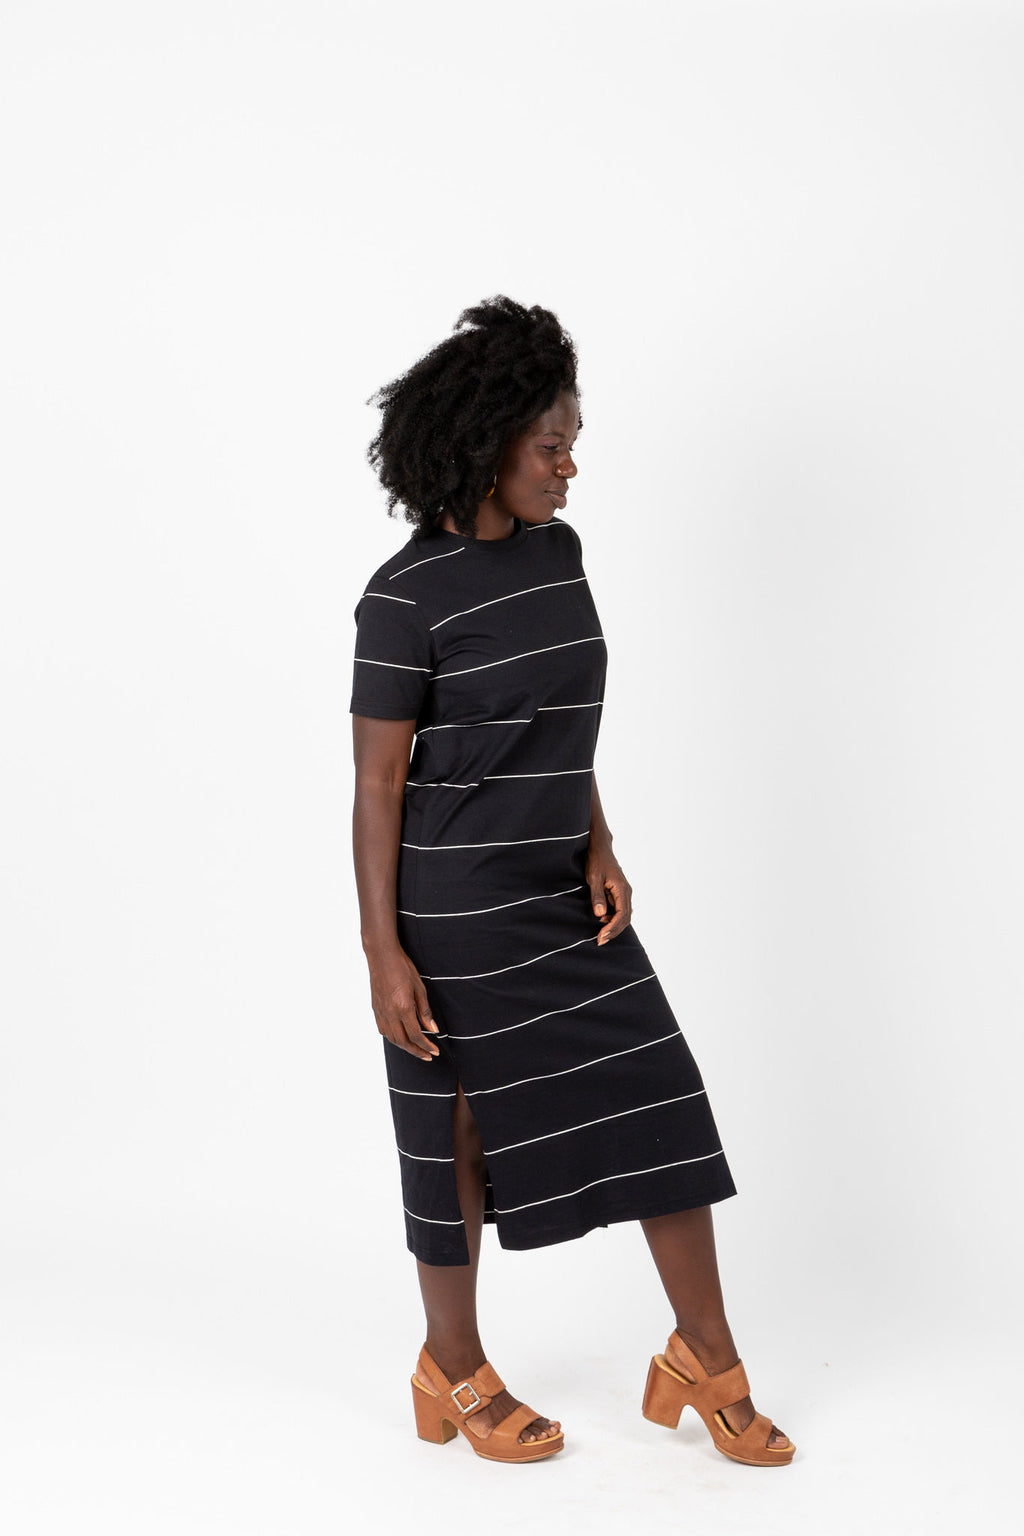 The Kate Striped Midi Dress in Black, studio shoot; side view